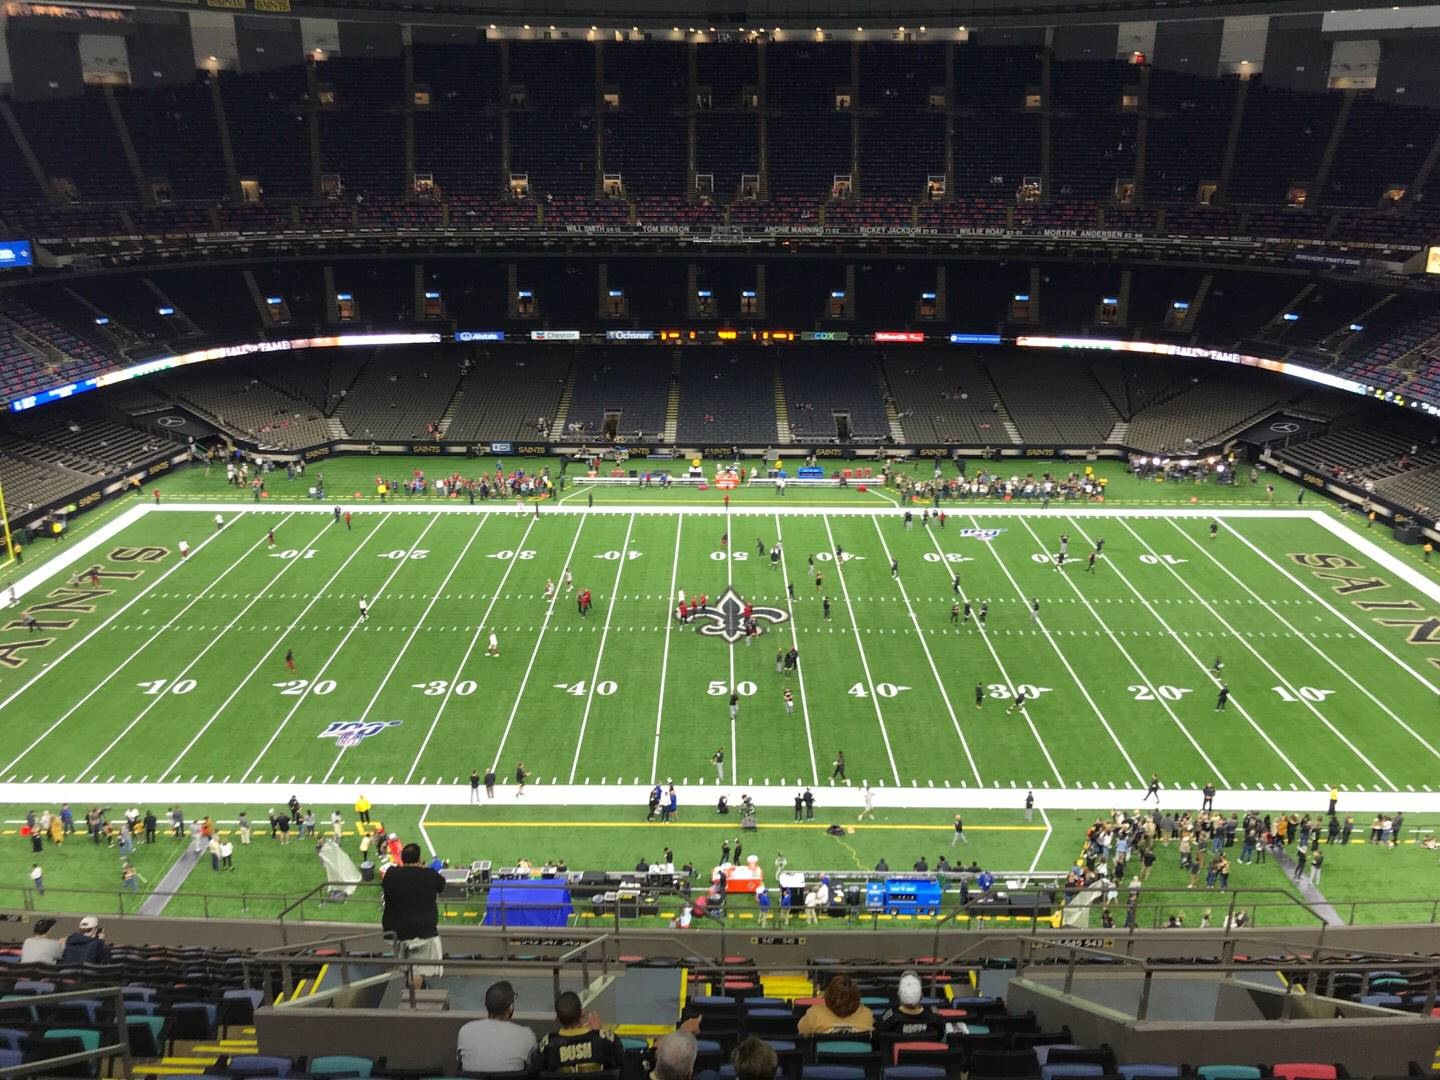 Mercedes-Benz Superdome Section 640 Row 20 Seat 10